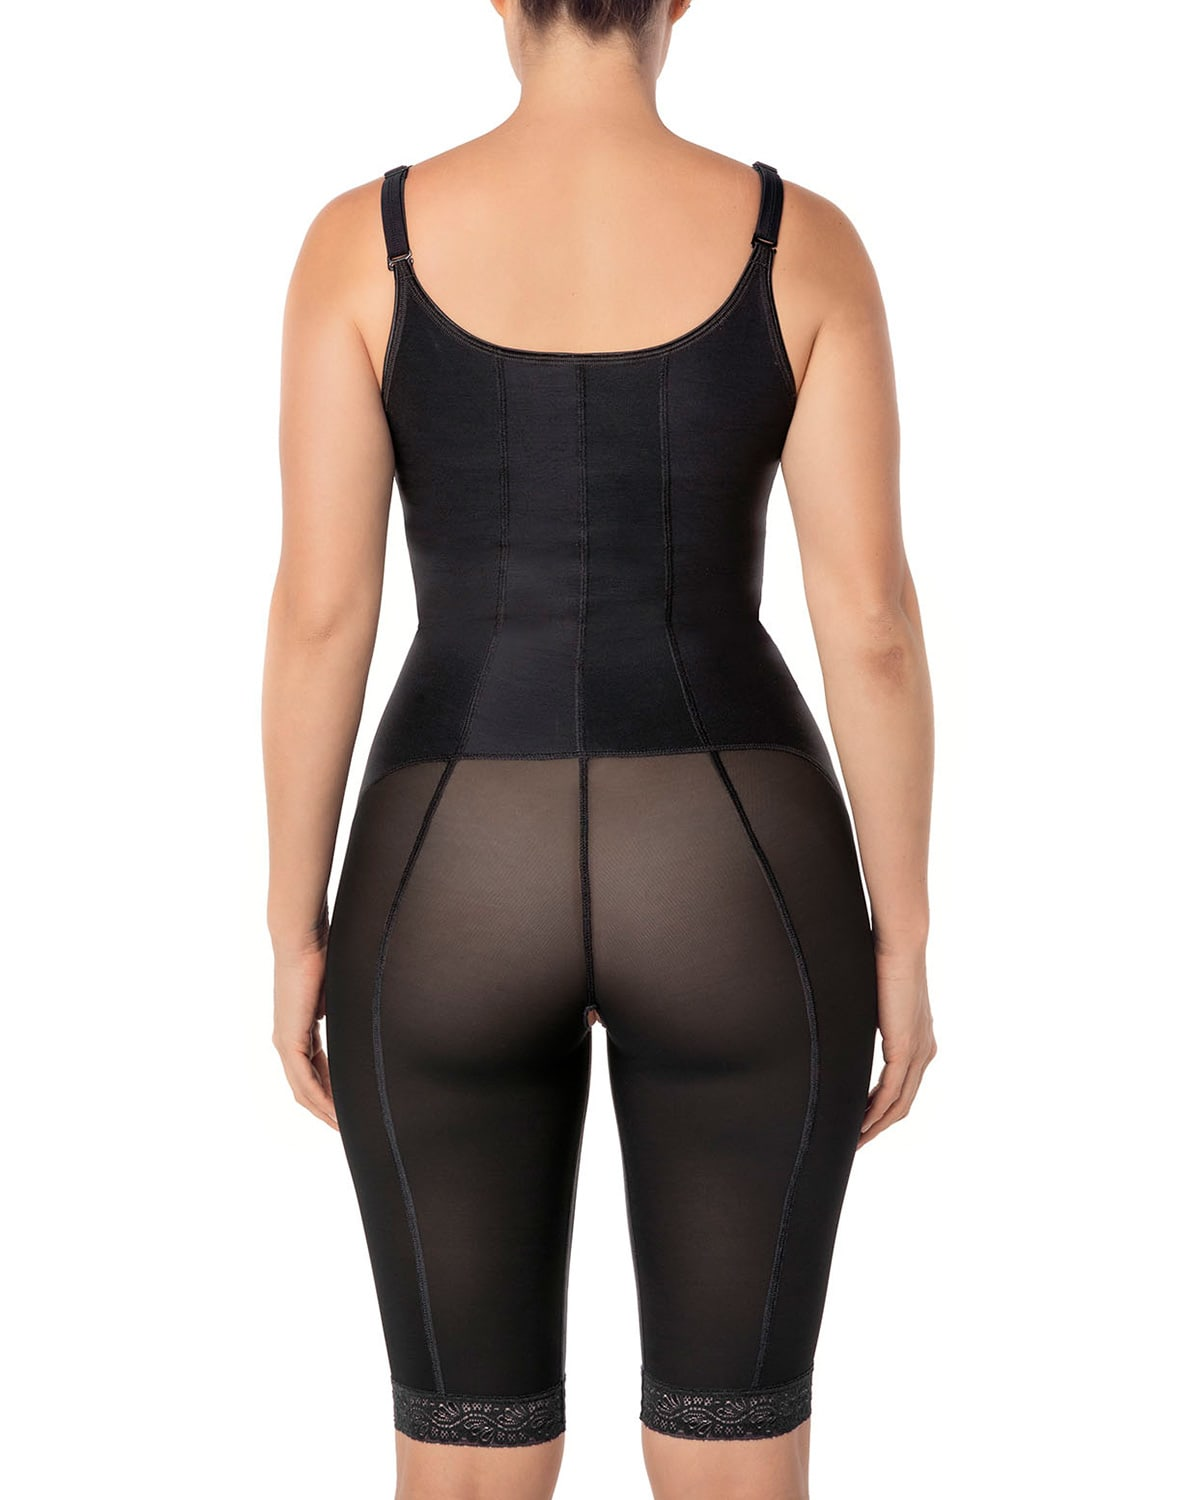 982f58d19 Firm Compression Knee-Length Body Shaper